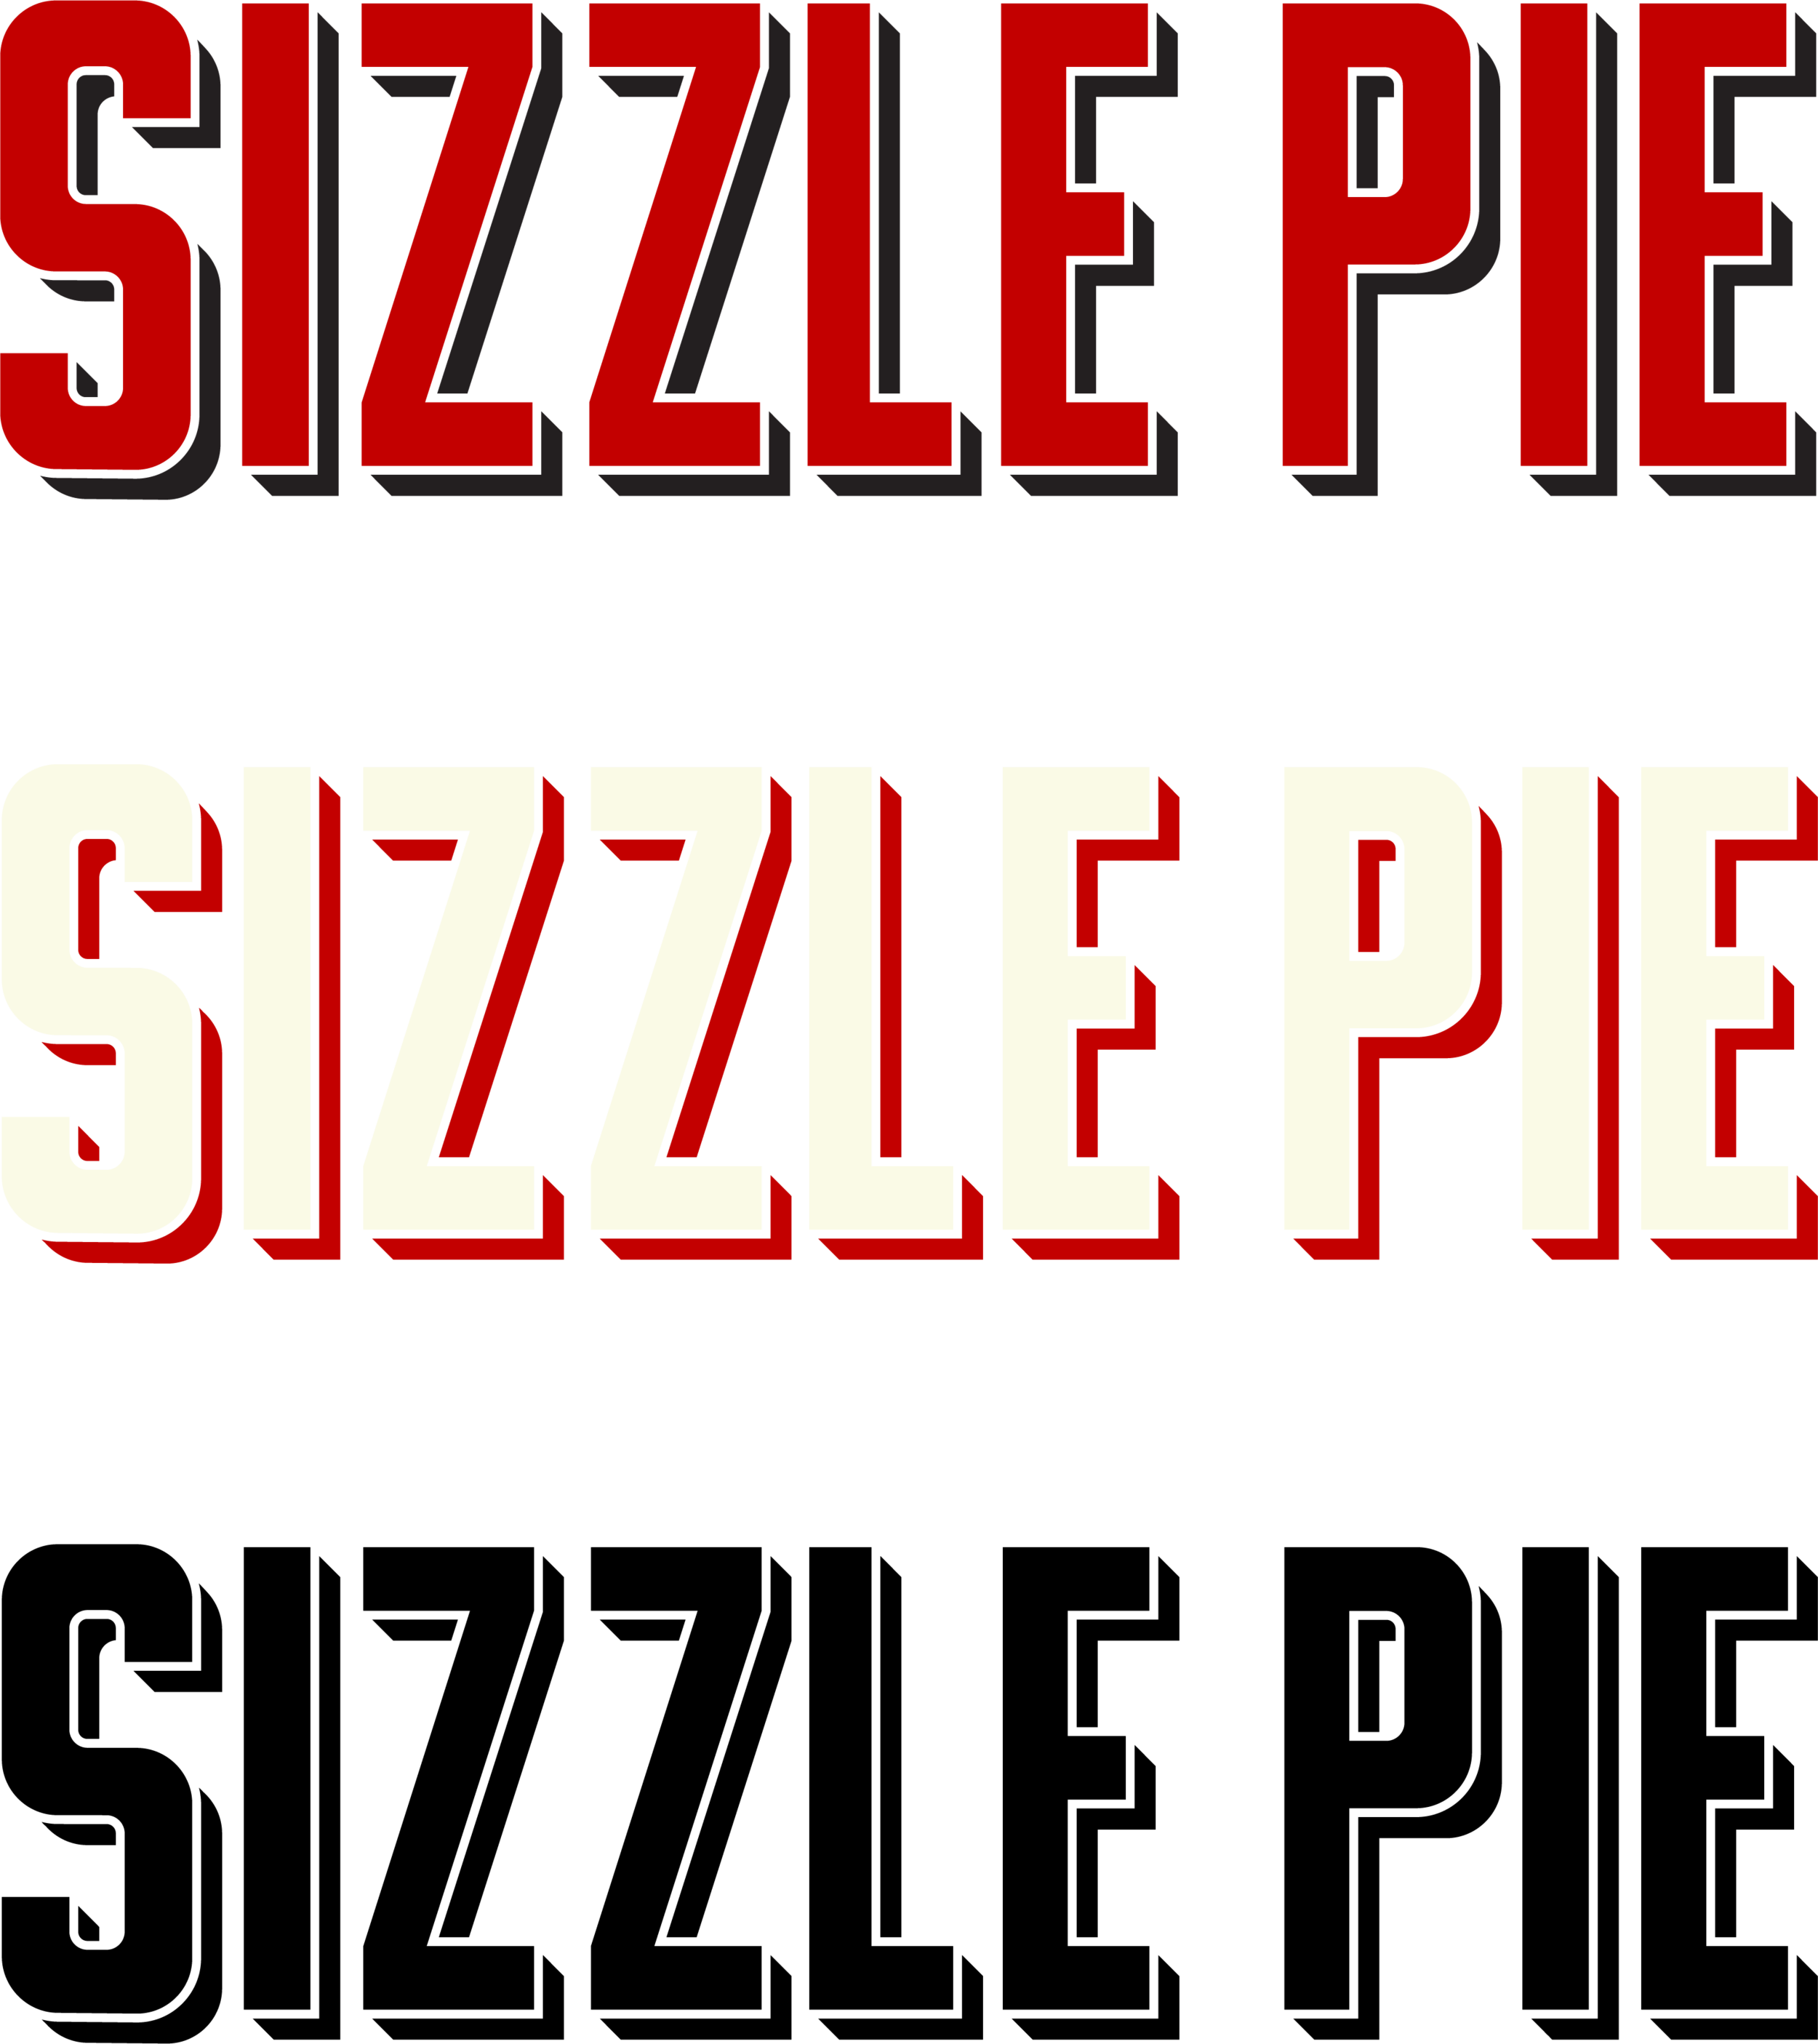 SizzlePie-logos.png